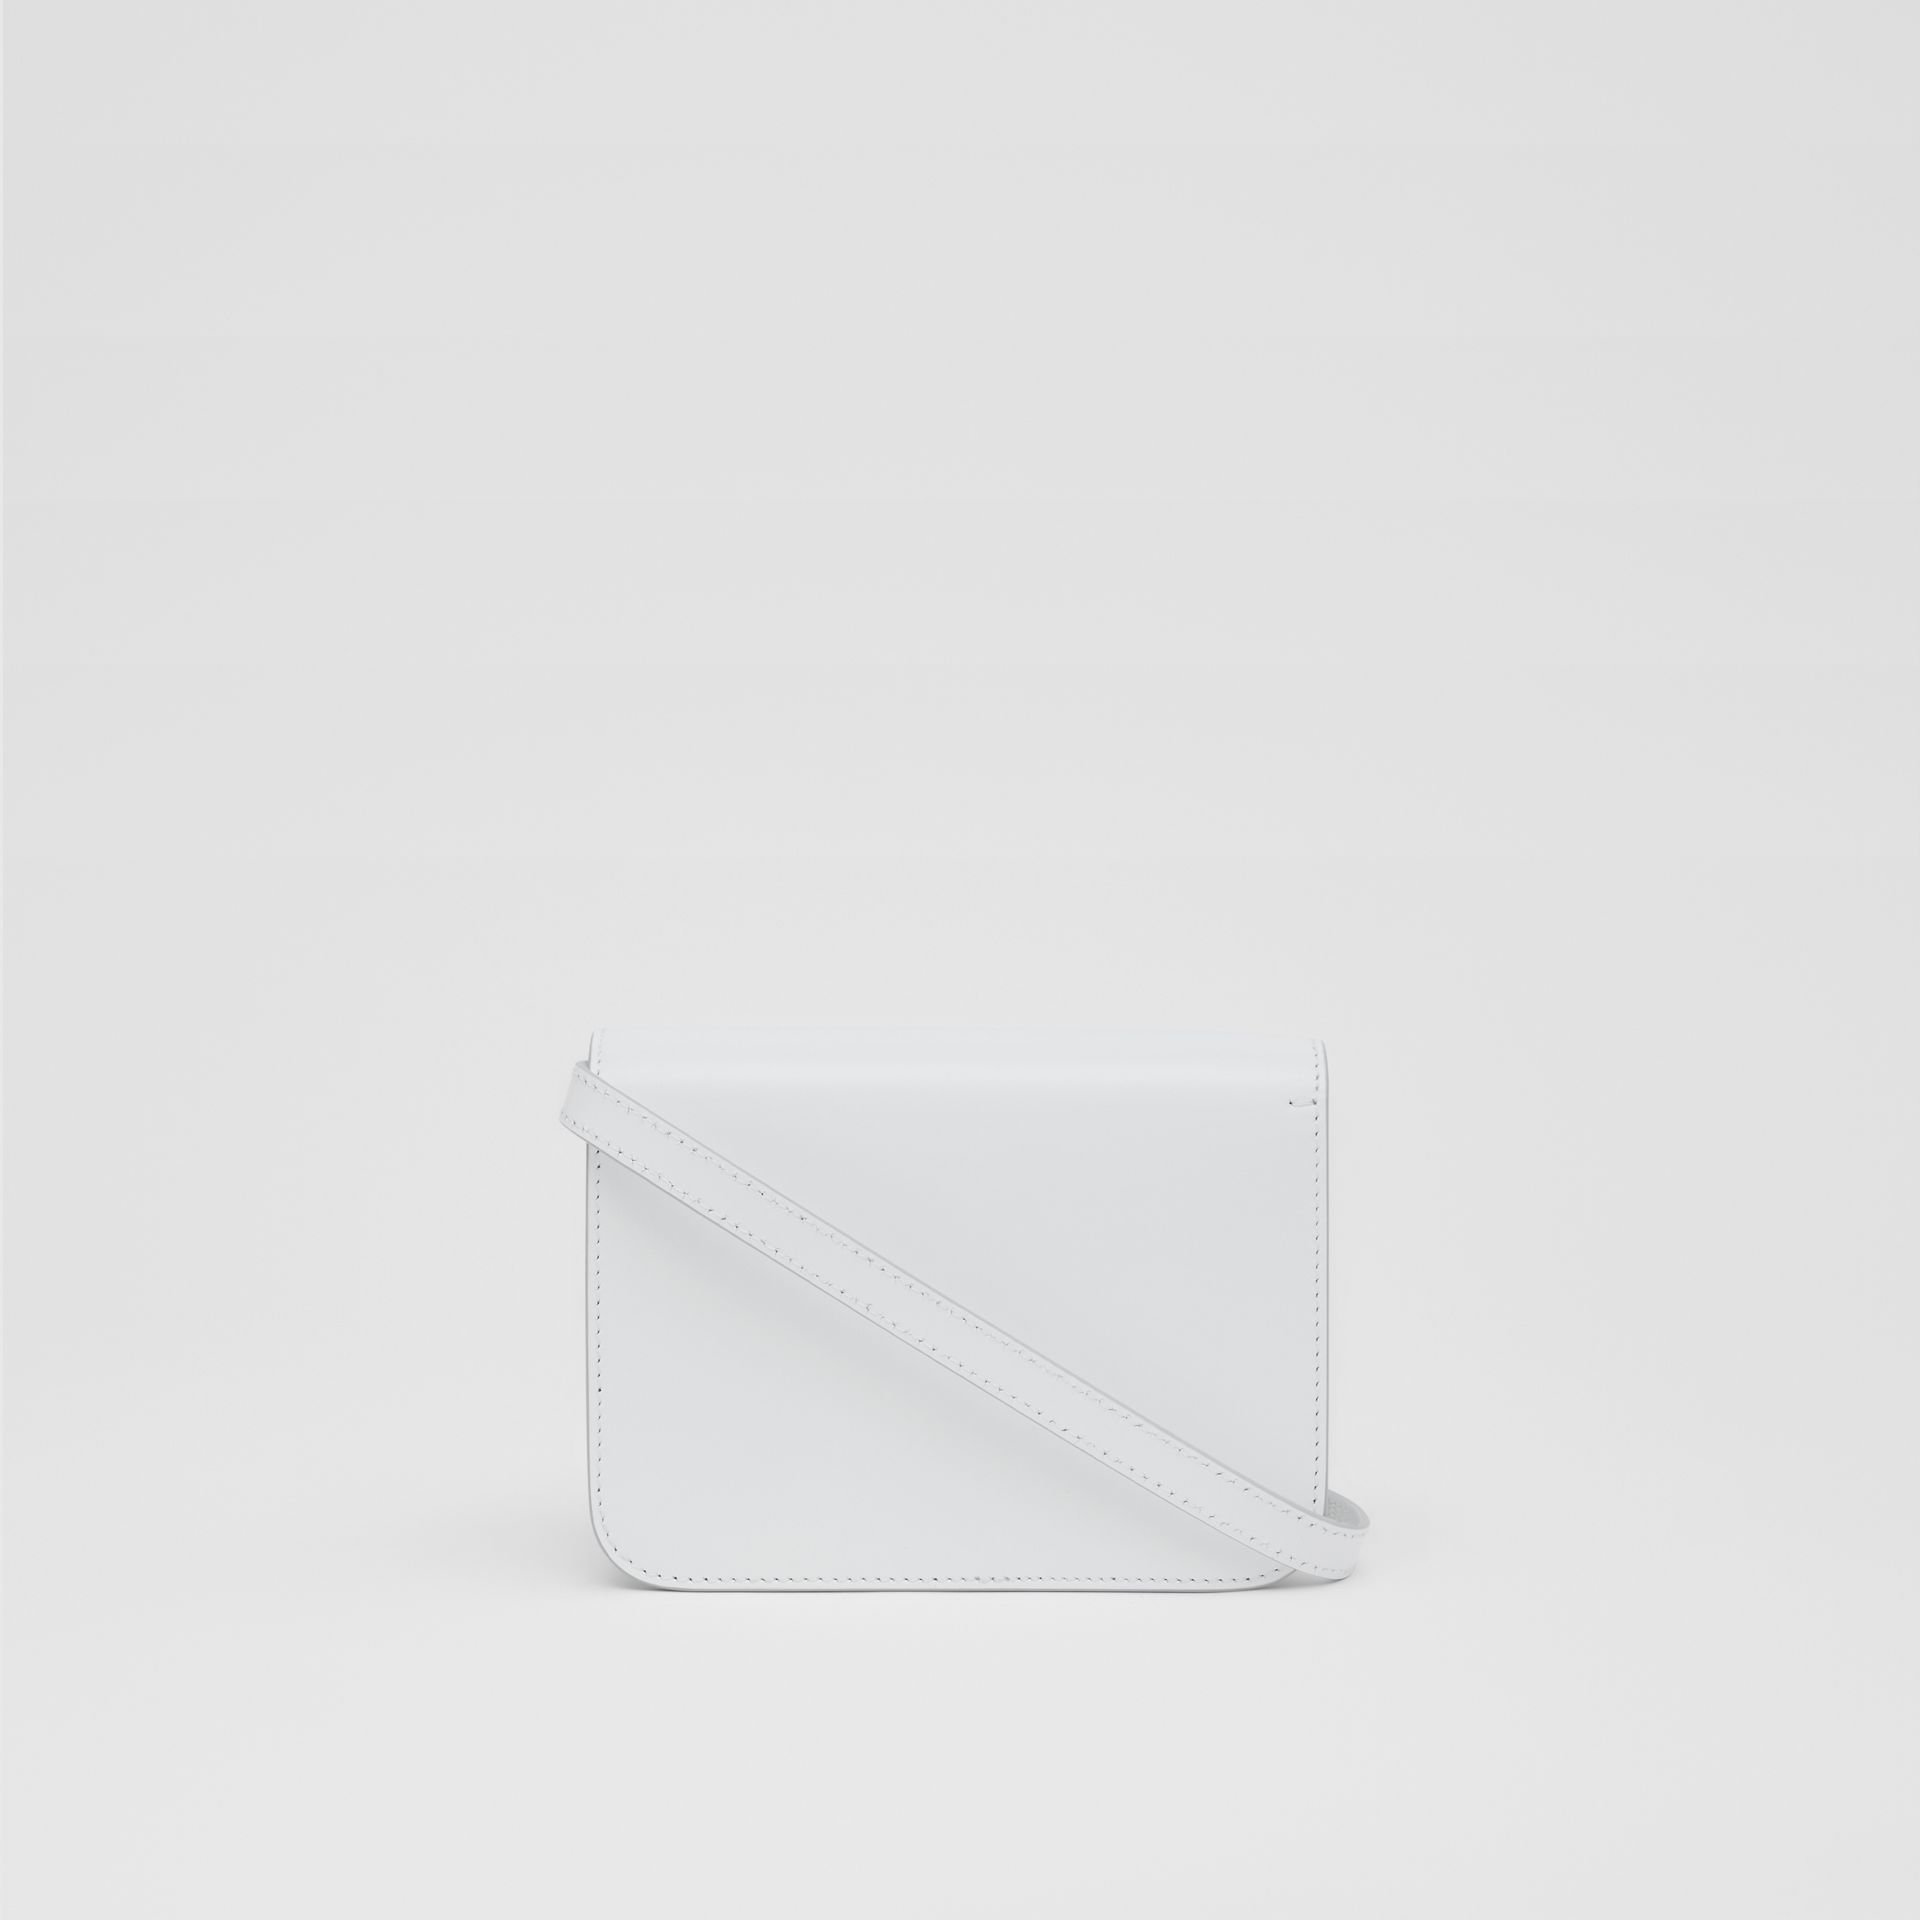 Mini Leather TB Bag in Optic White - Women | Burberry United States - gallery image 5